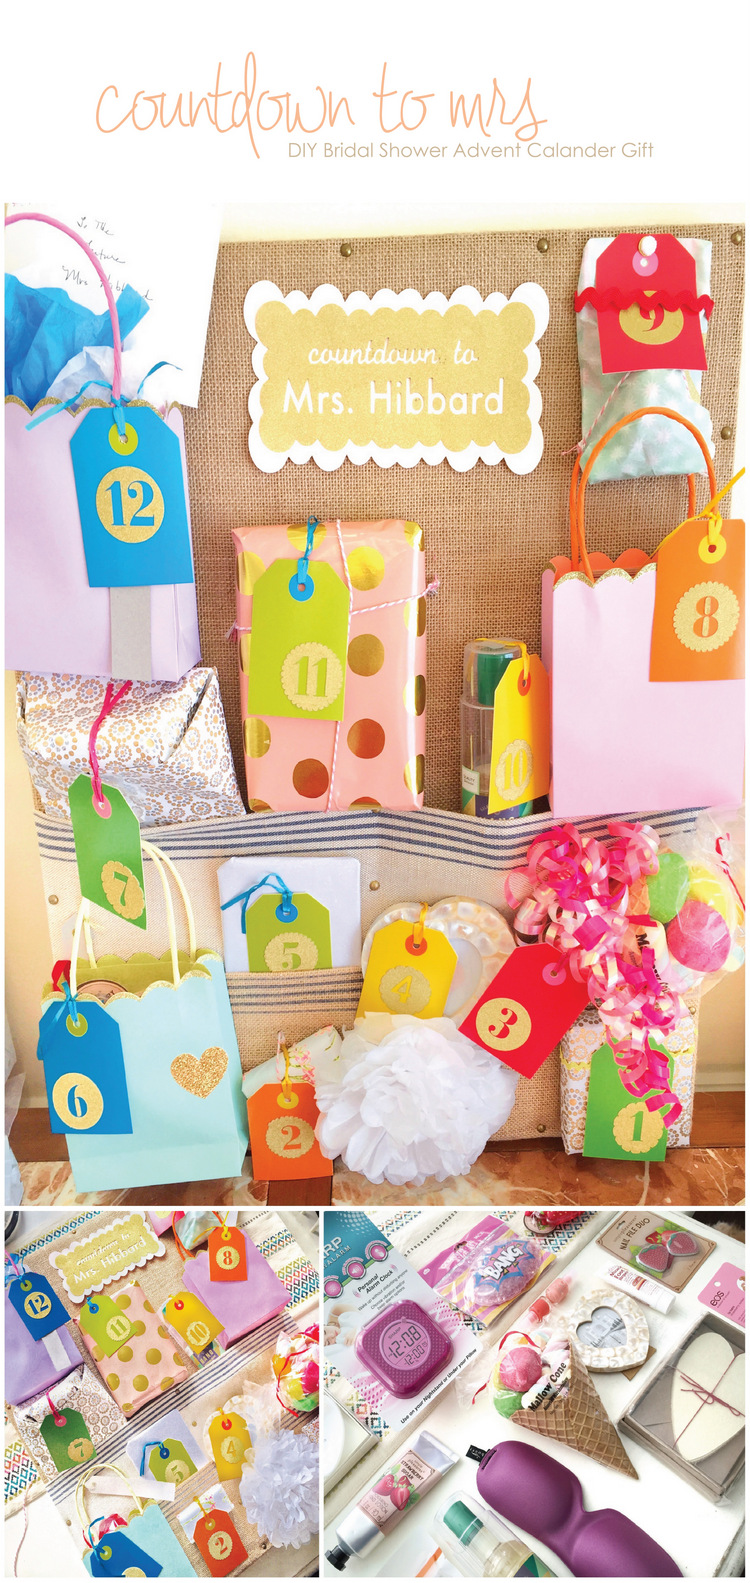 DIY Bridal Shower Advent Calendar Gift